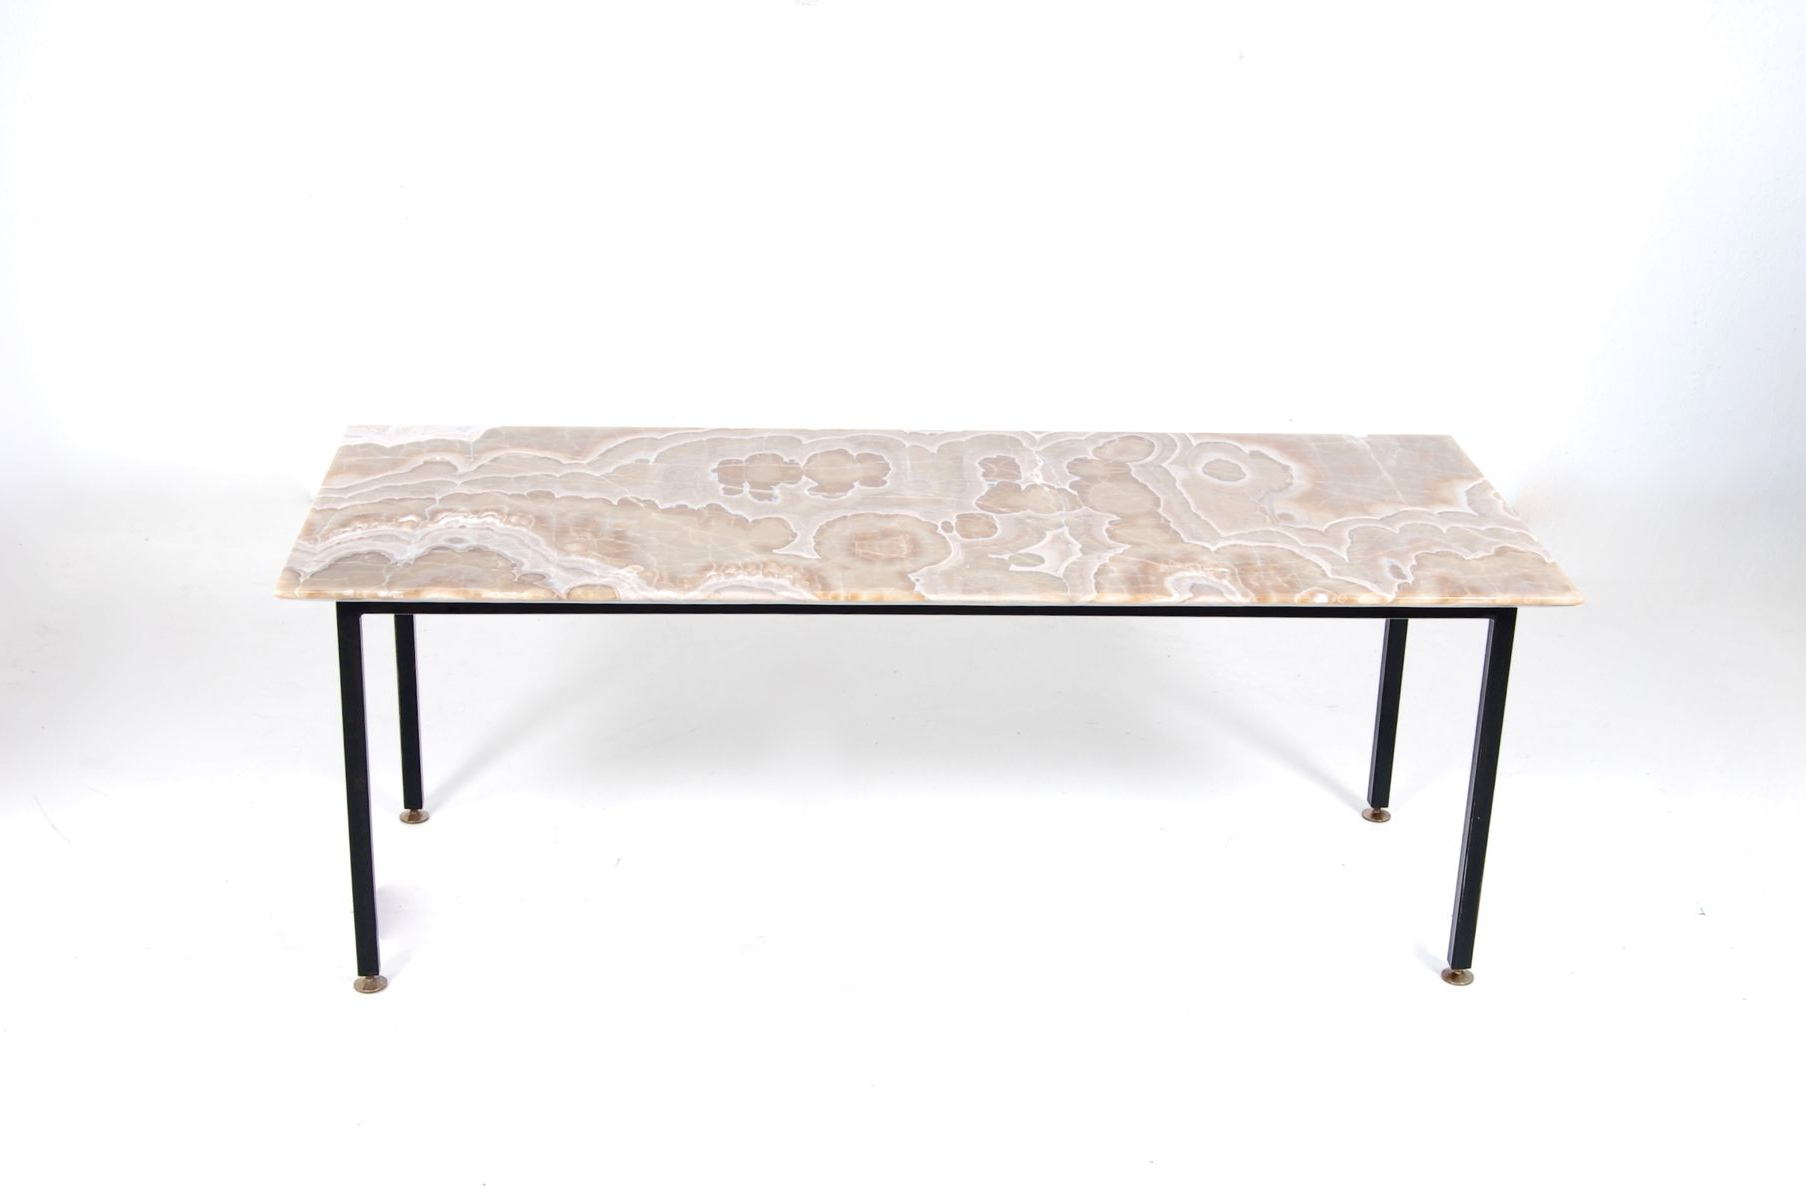 Widely Used Iron Marble Coffee Tables Throughout Mid Century Italian Iron, Brass, & Marble Coffee Table For Sale At (View 20 of 20)